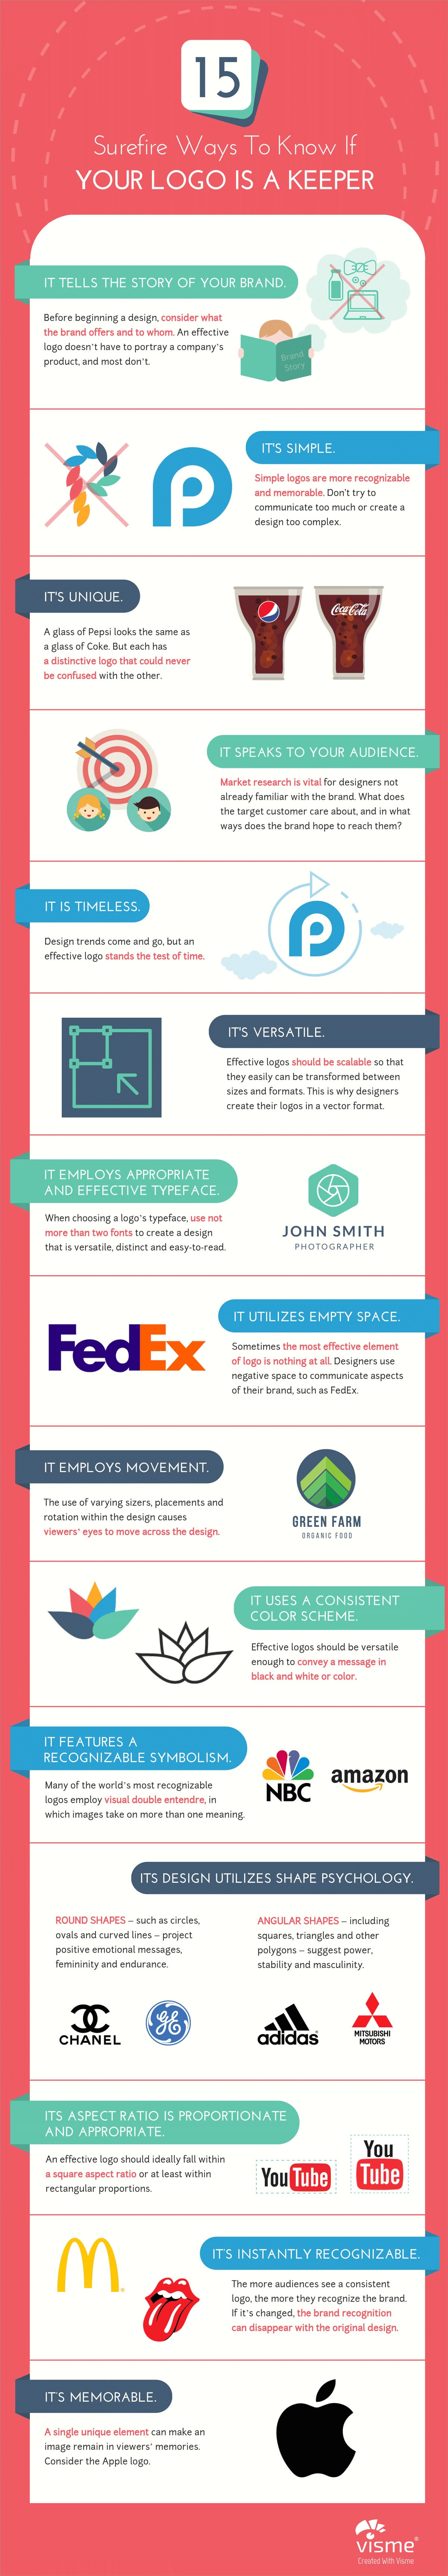 15 Surefire Ways to Know If Your Logo Is a Keeper Infographic